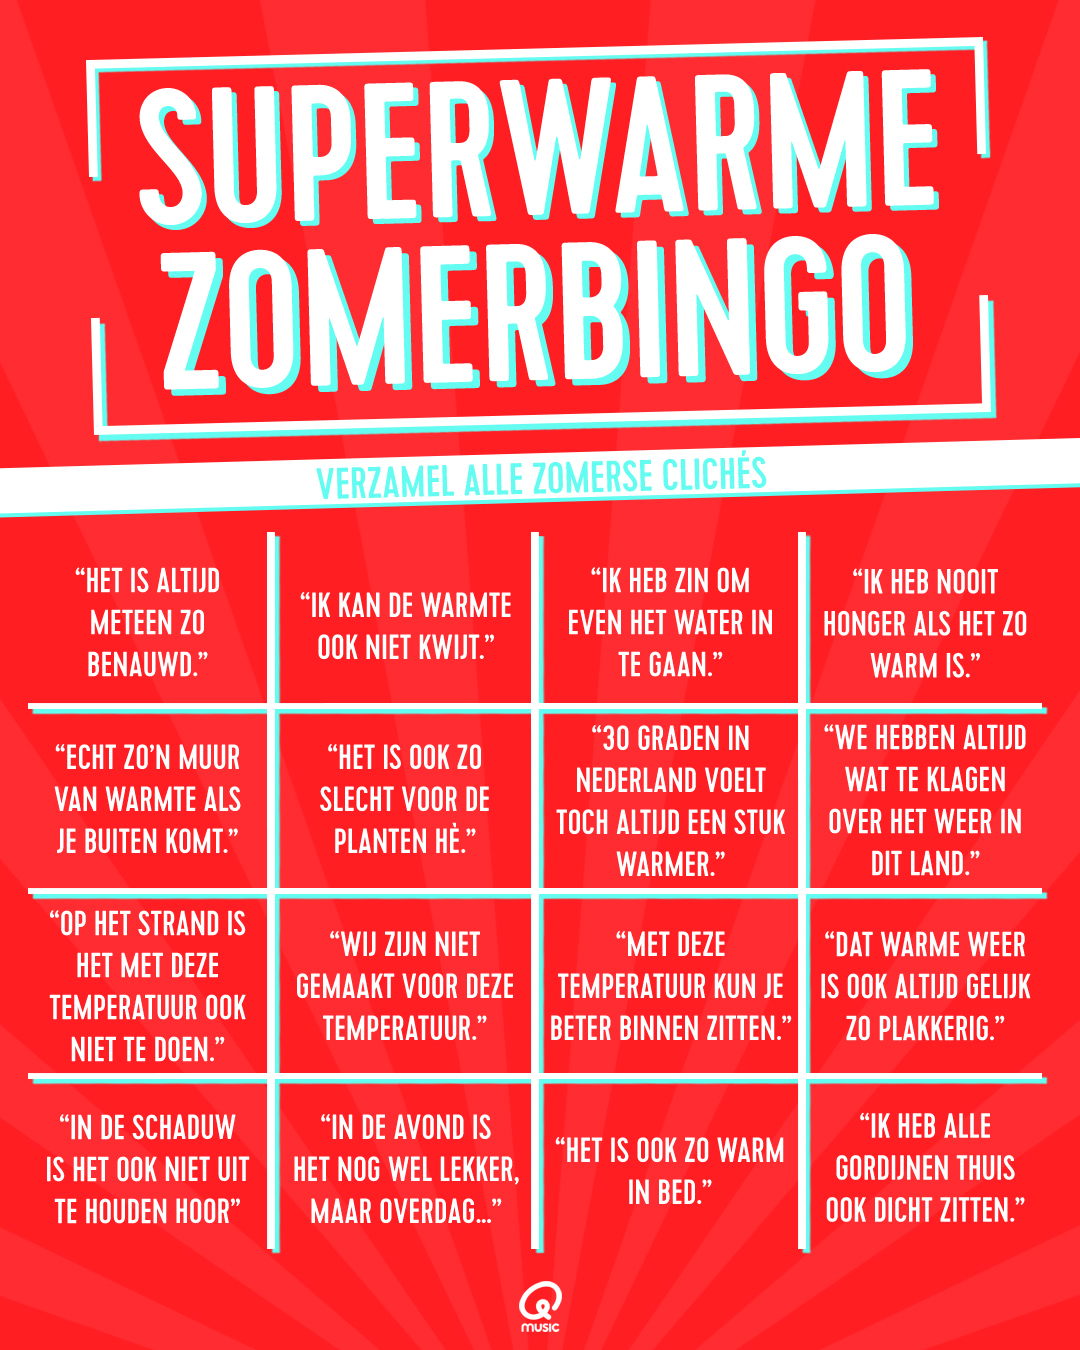 Superwarme zomerbingo